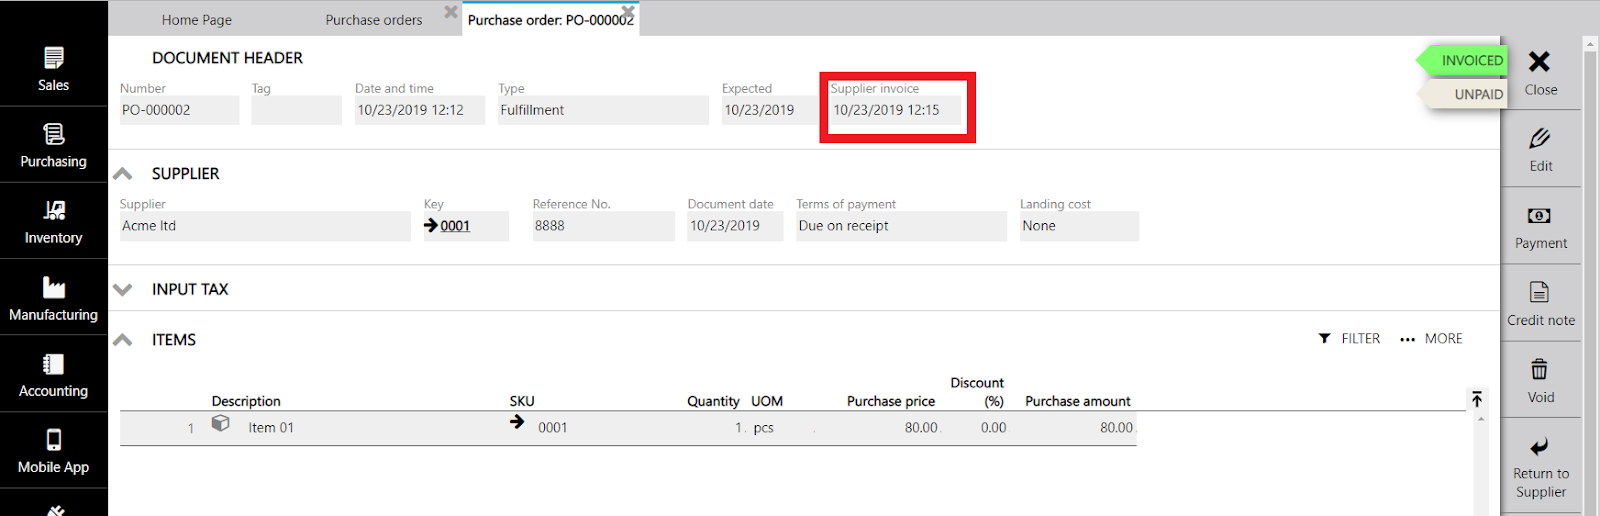 purchase order supplier invoice